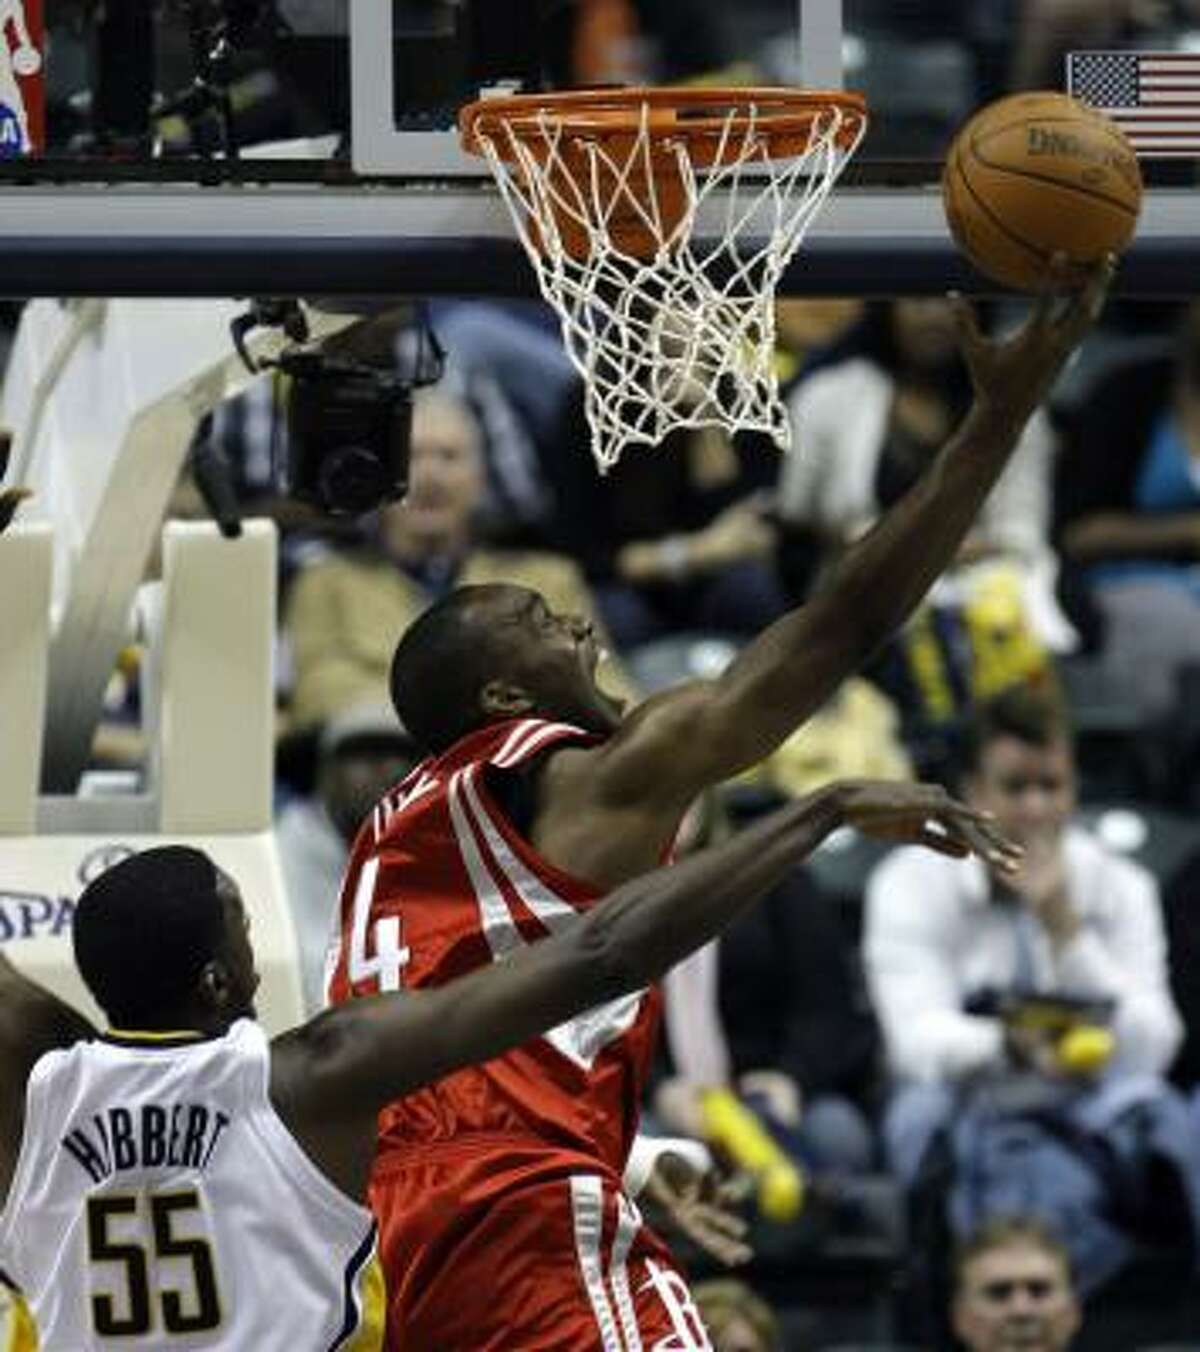 Rockets forward Carl Landry, right, puts up a shot against Pacers center Roy Hibbert during the fourth quarter of Friday's game in Indianapolis.